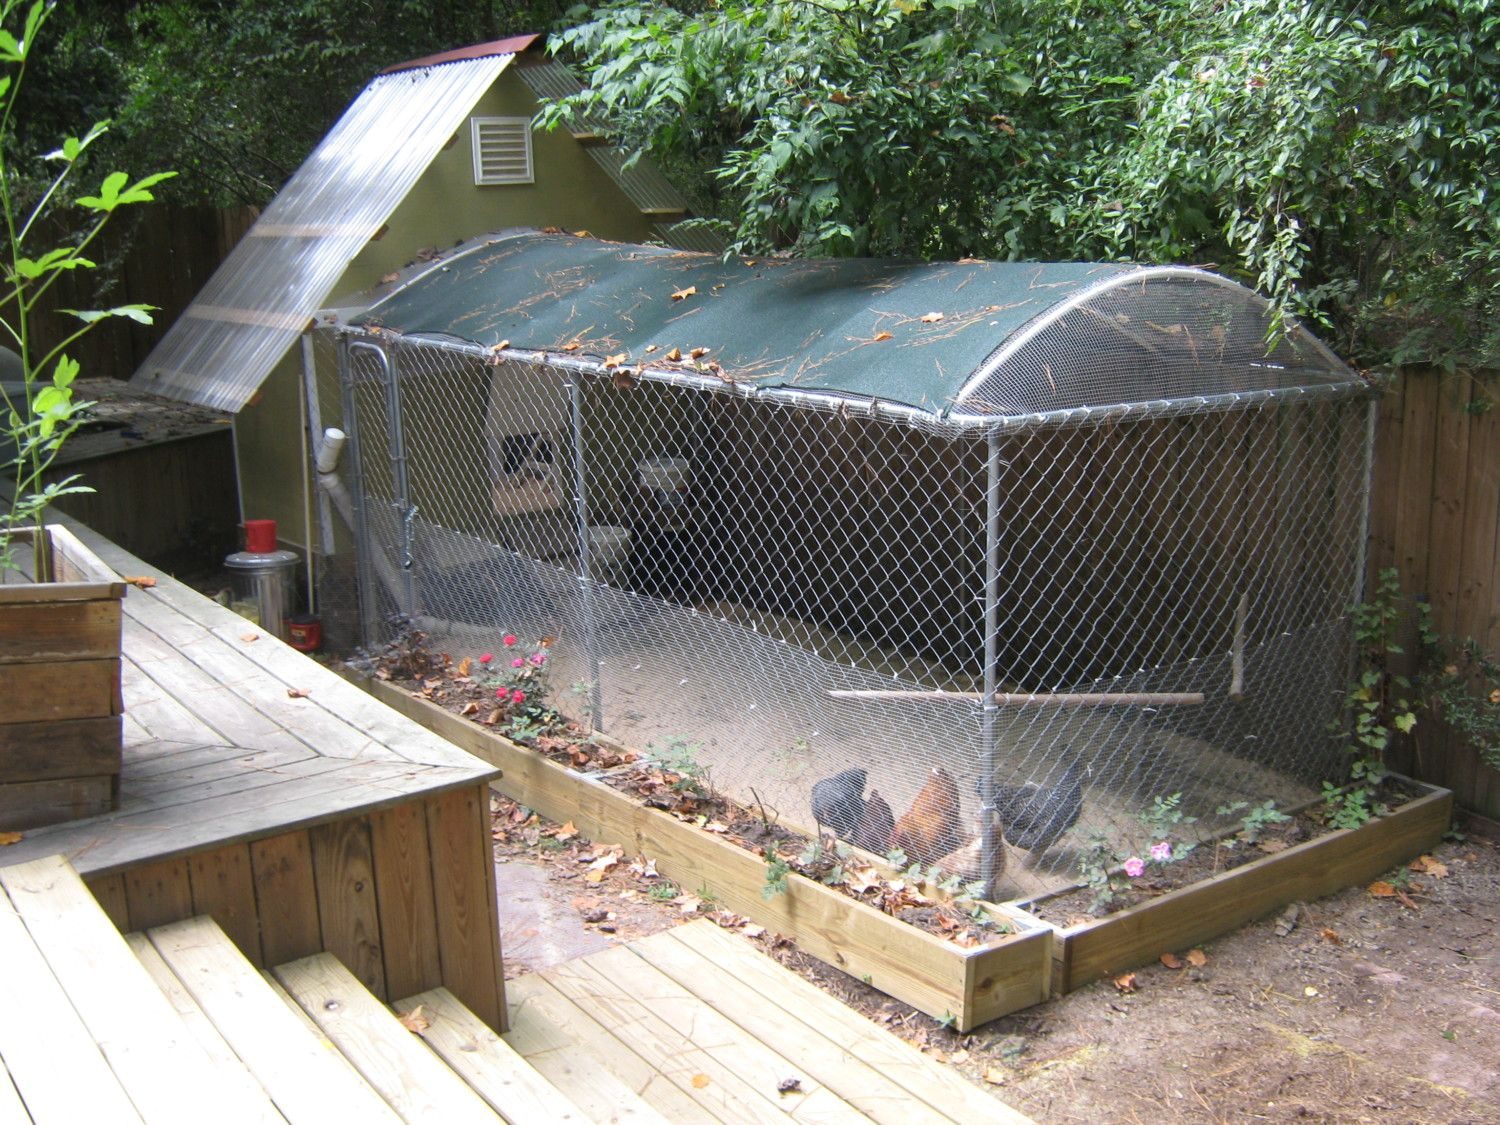 georgiagail's photos in 10x10 dog kennel as open coop tips